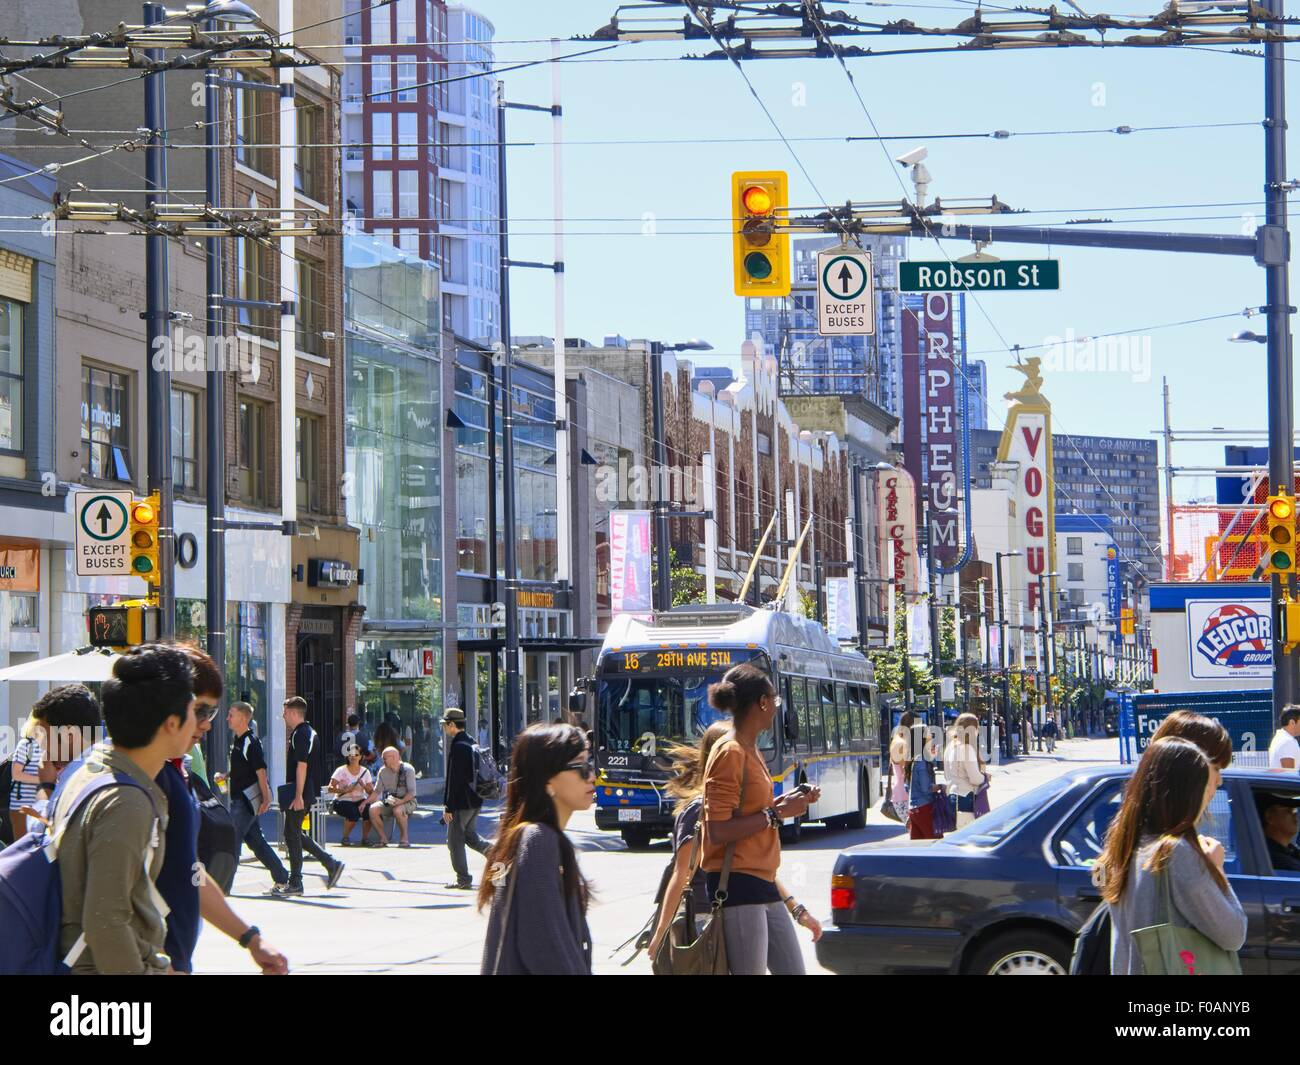 View of busy Robson crossroad in Vancouver, British Columbia, Canada - Stock Image